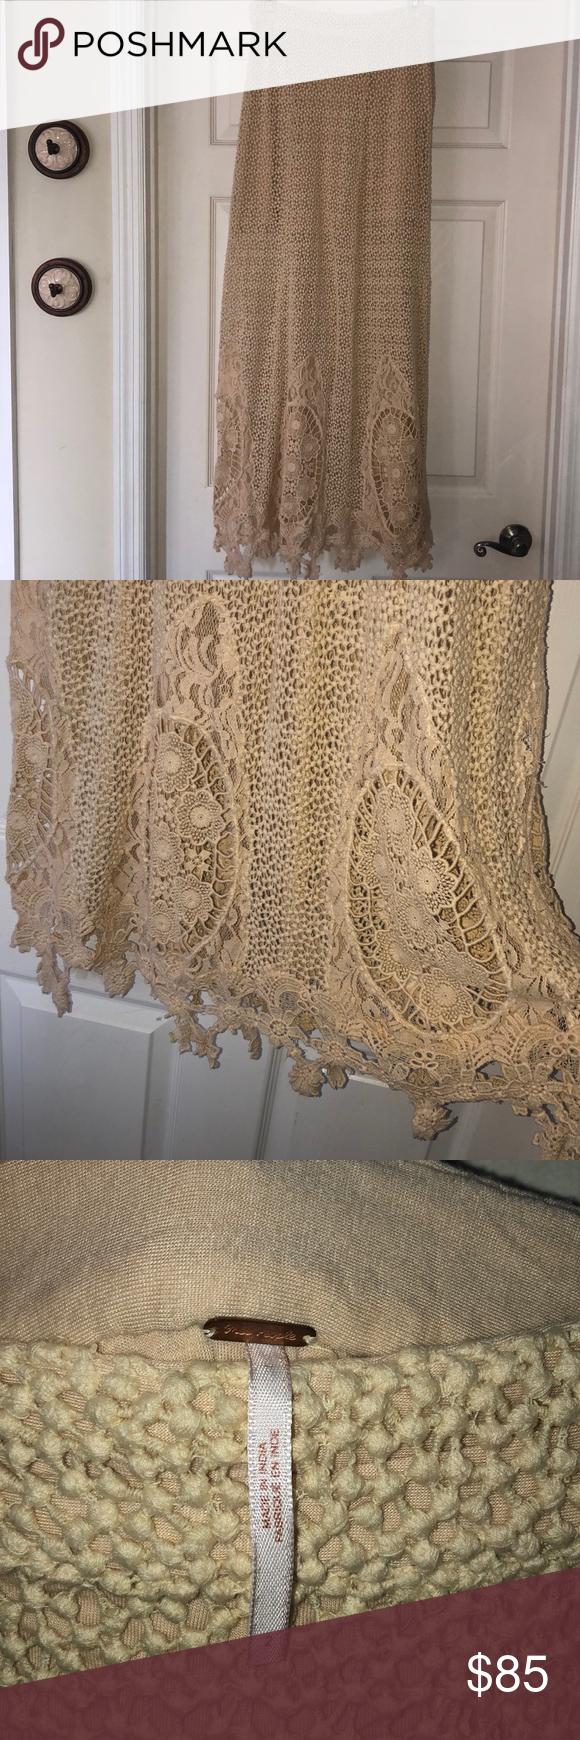 Free People Mi Amore Maxi Skirt Beautiful Free People crochet maxi skirt with gorgeous lace detailing at bottom. A rare FP piece! The ONLY reason I'm selling it is it doesn't fit me anymore. It is STUNNING!! Worn a few times. No major tears, rips or pulls. Cream colored with side zip and half under slip. Free People Skirts Maxi